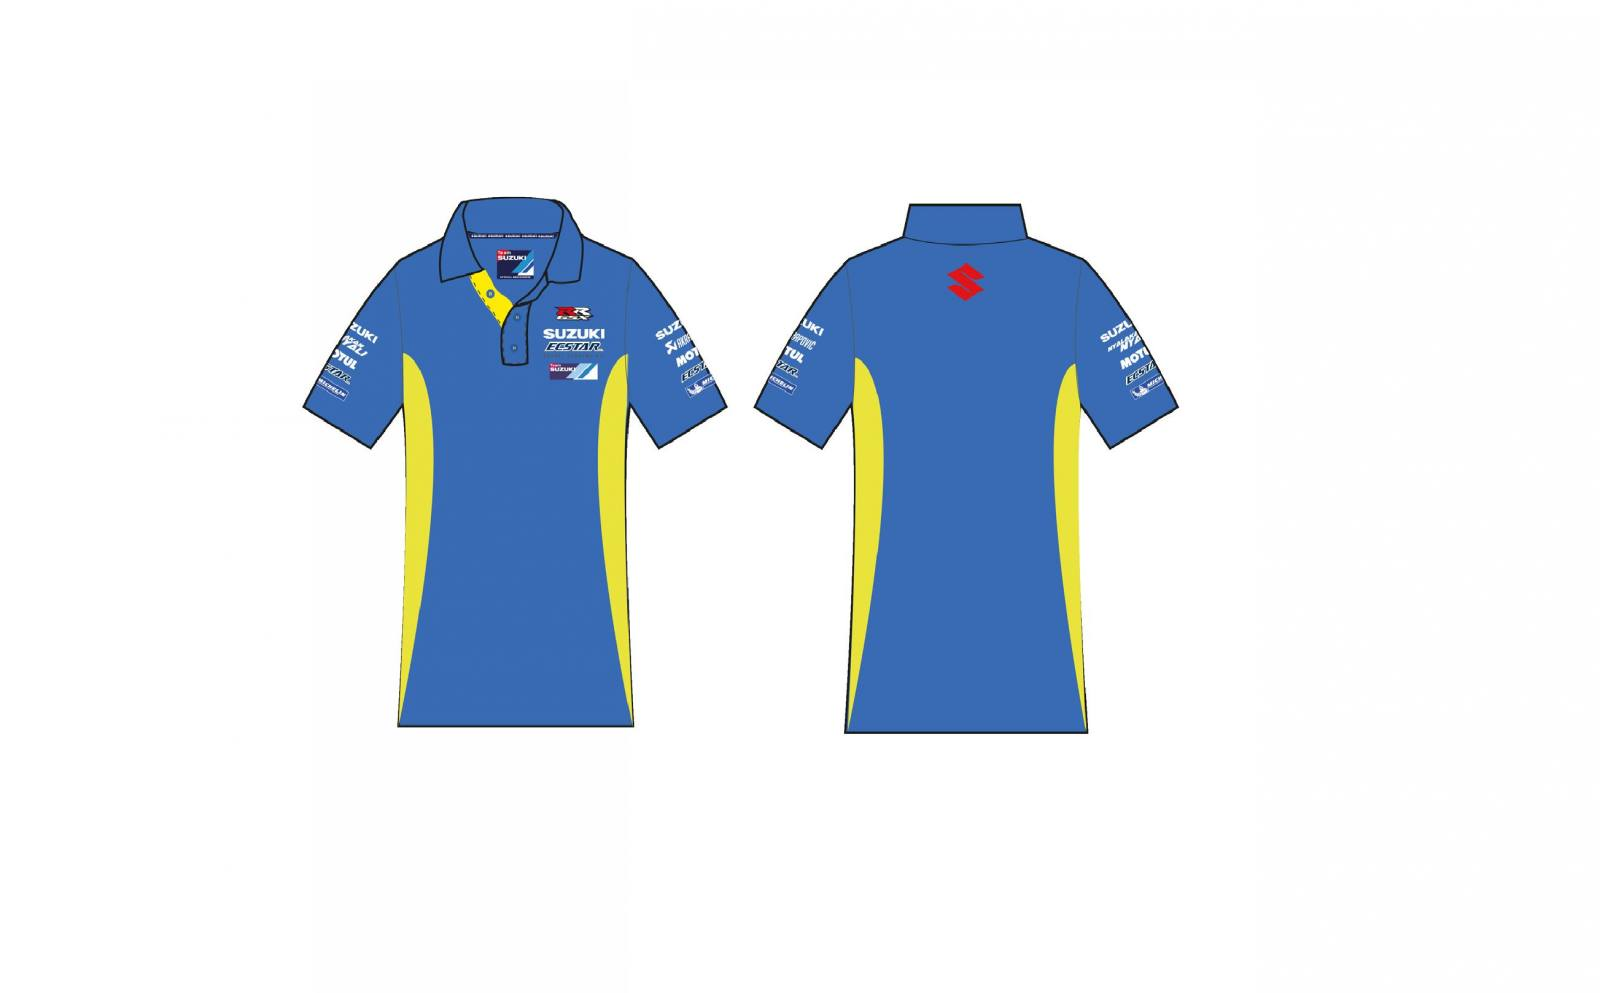 Motogp Team Ladies Polo Shirt For Sale In Essex Junction Vt Land Air 800 639 6290